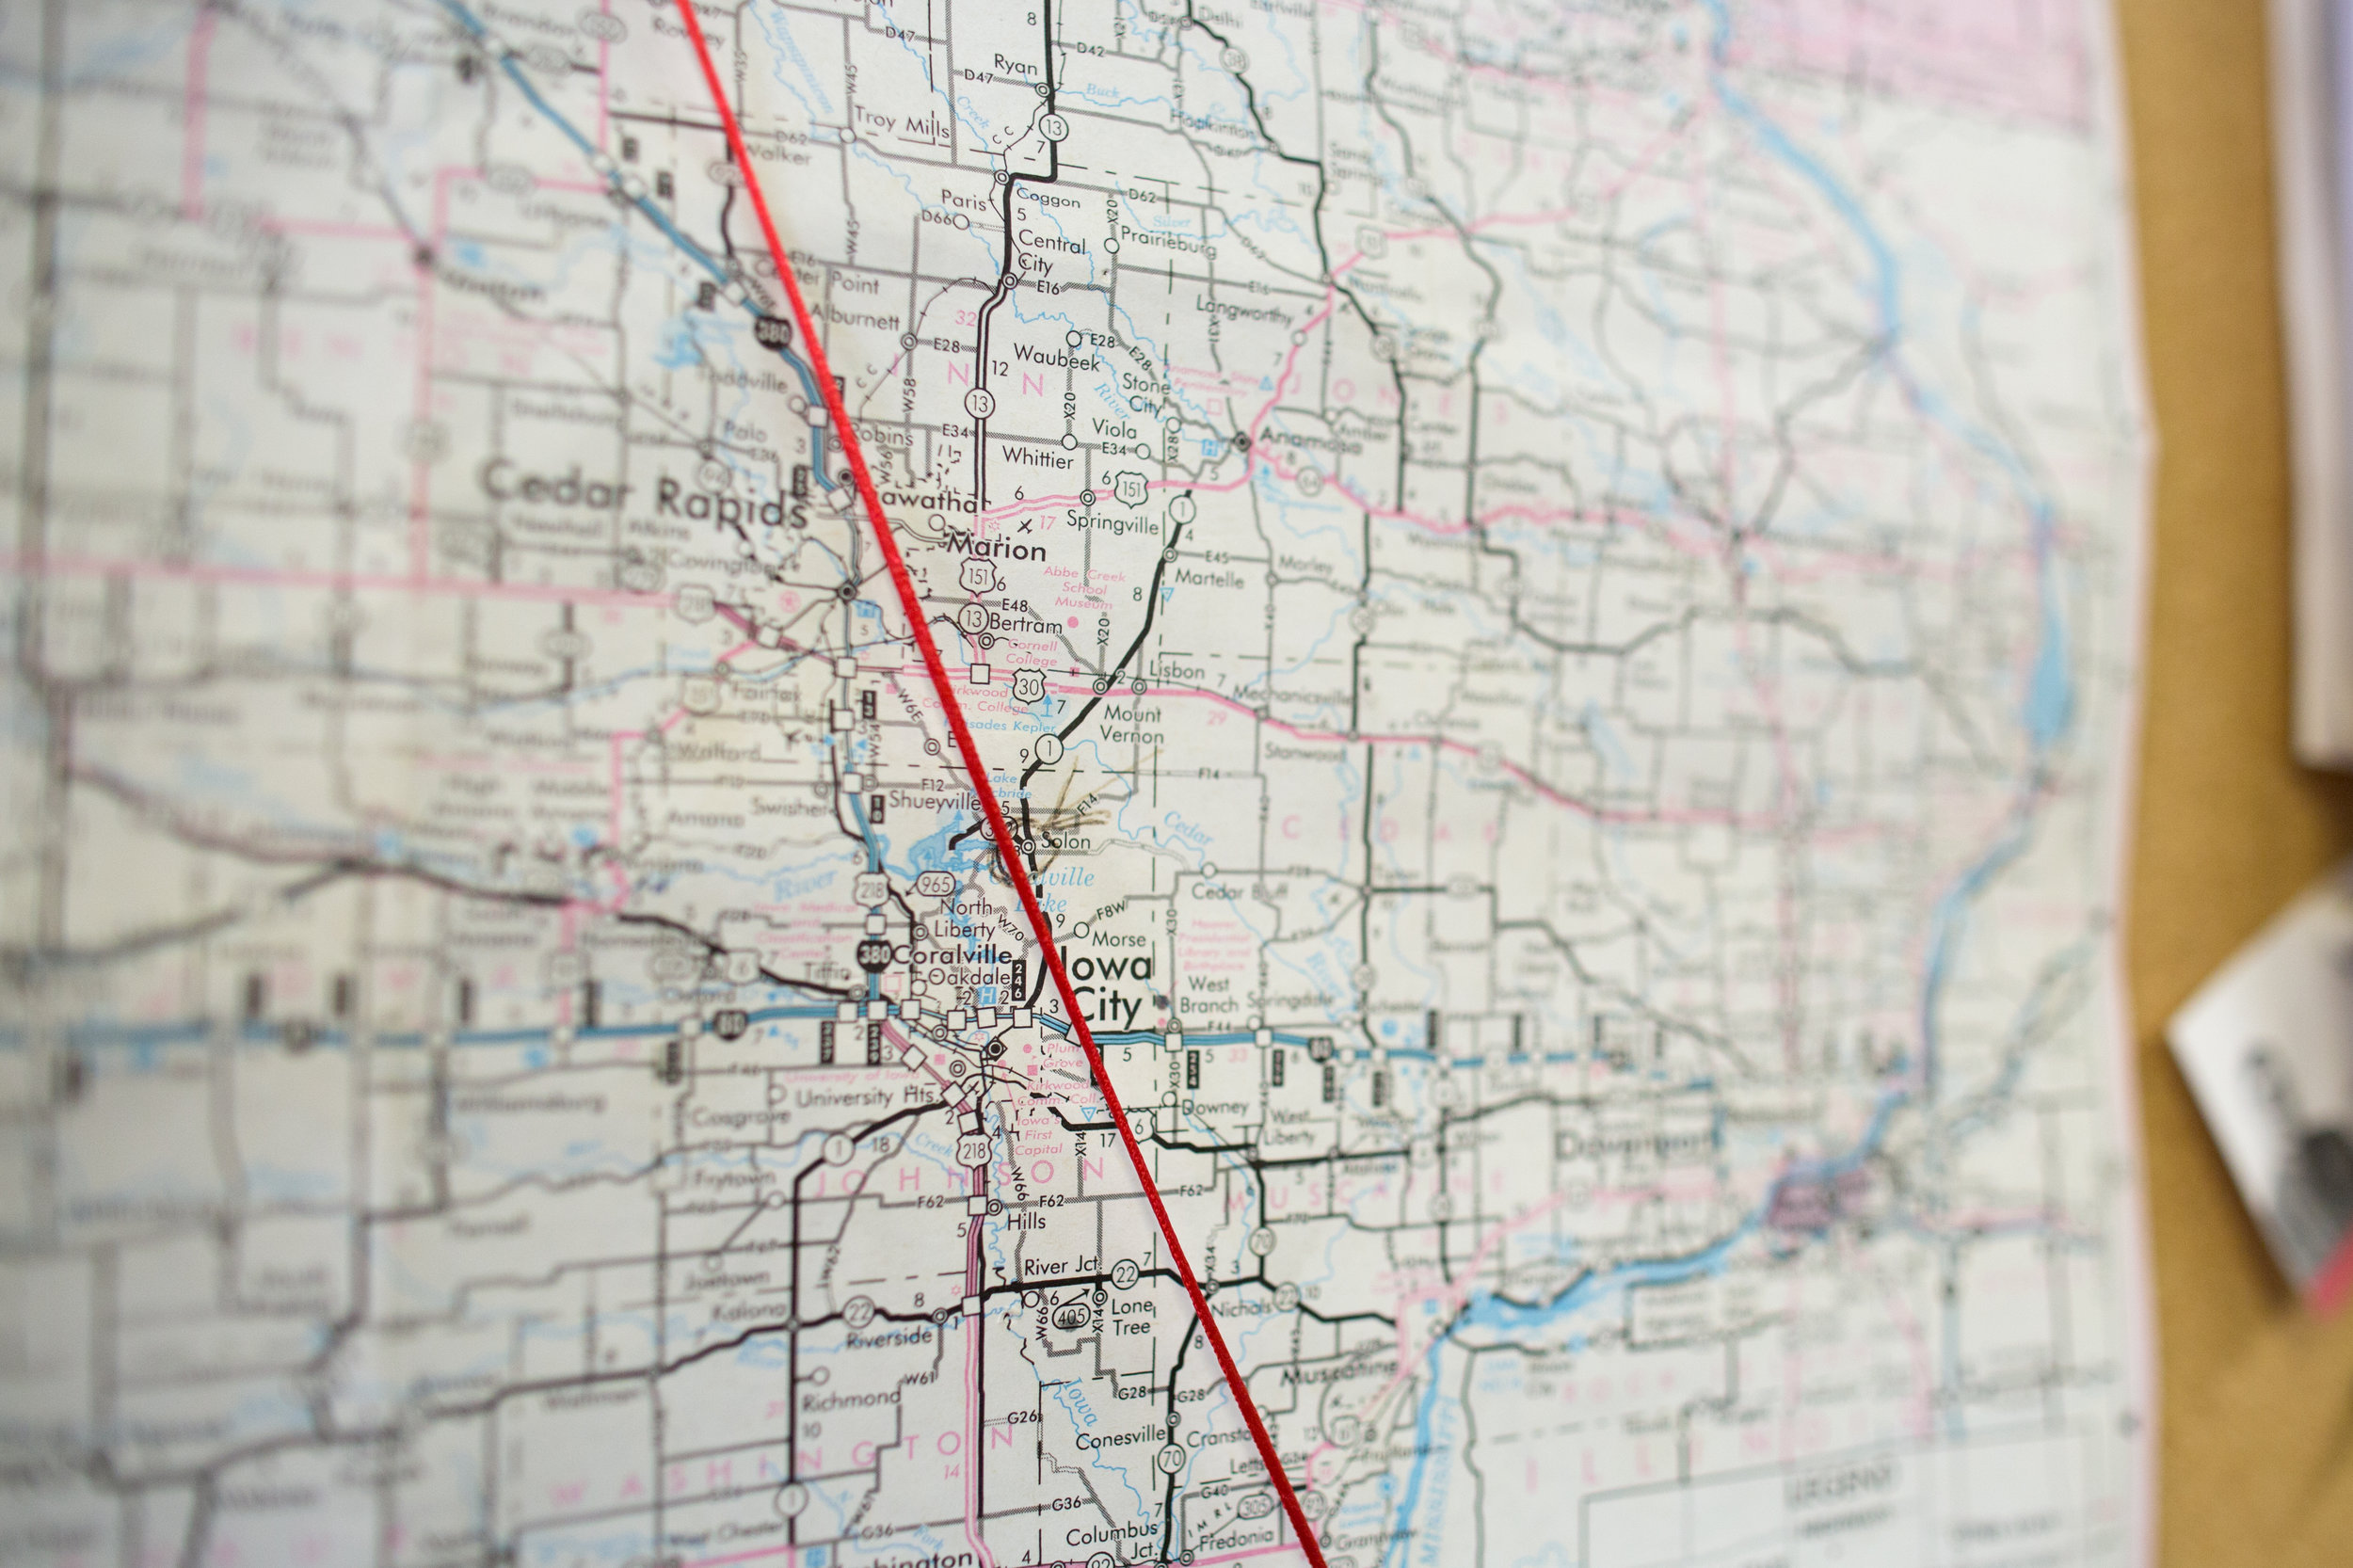 Solon is a town of approximately 2,500, located equidistant from Iowa City and Cedar Rapids, in eastern Iowa.